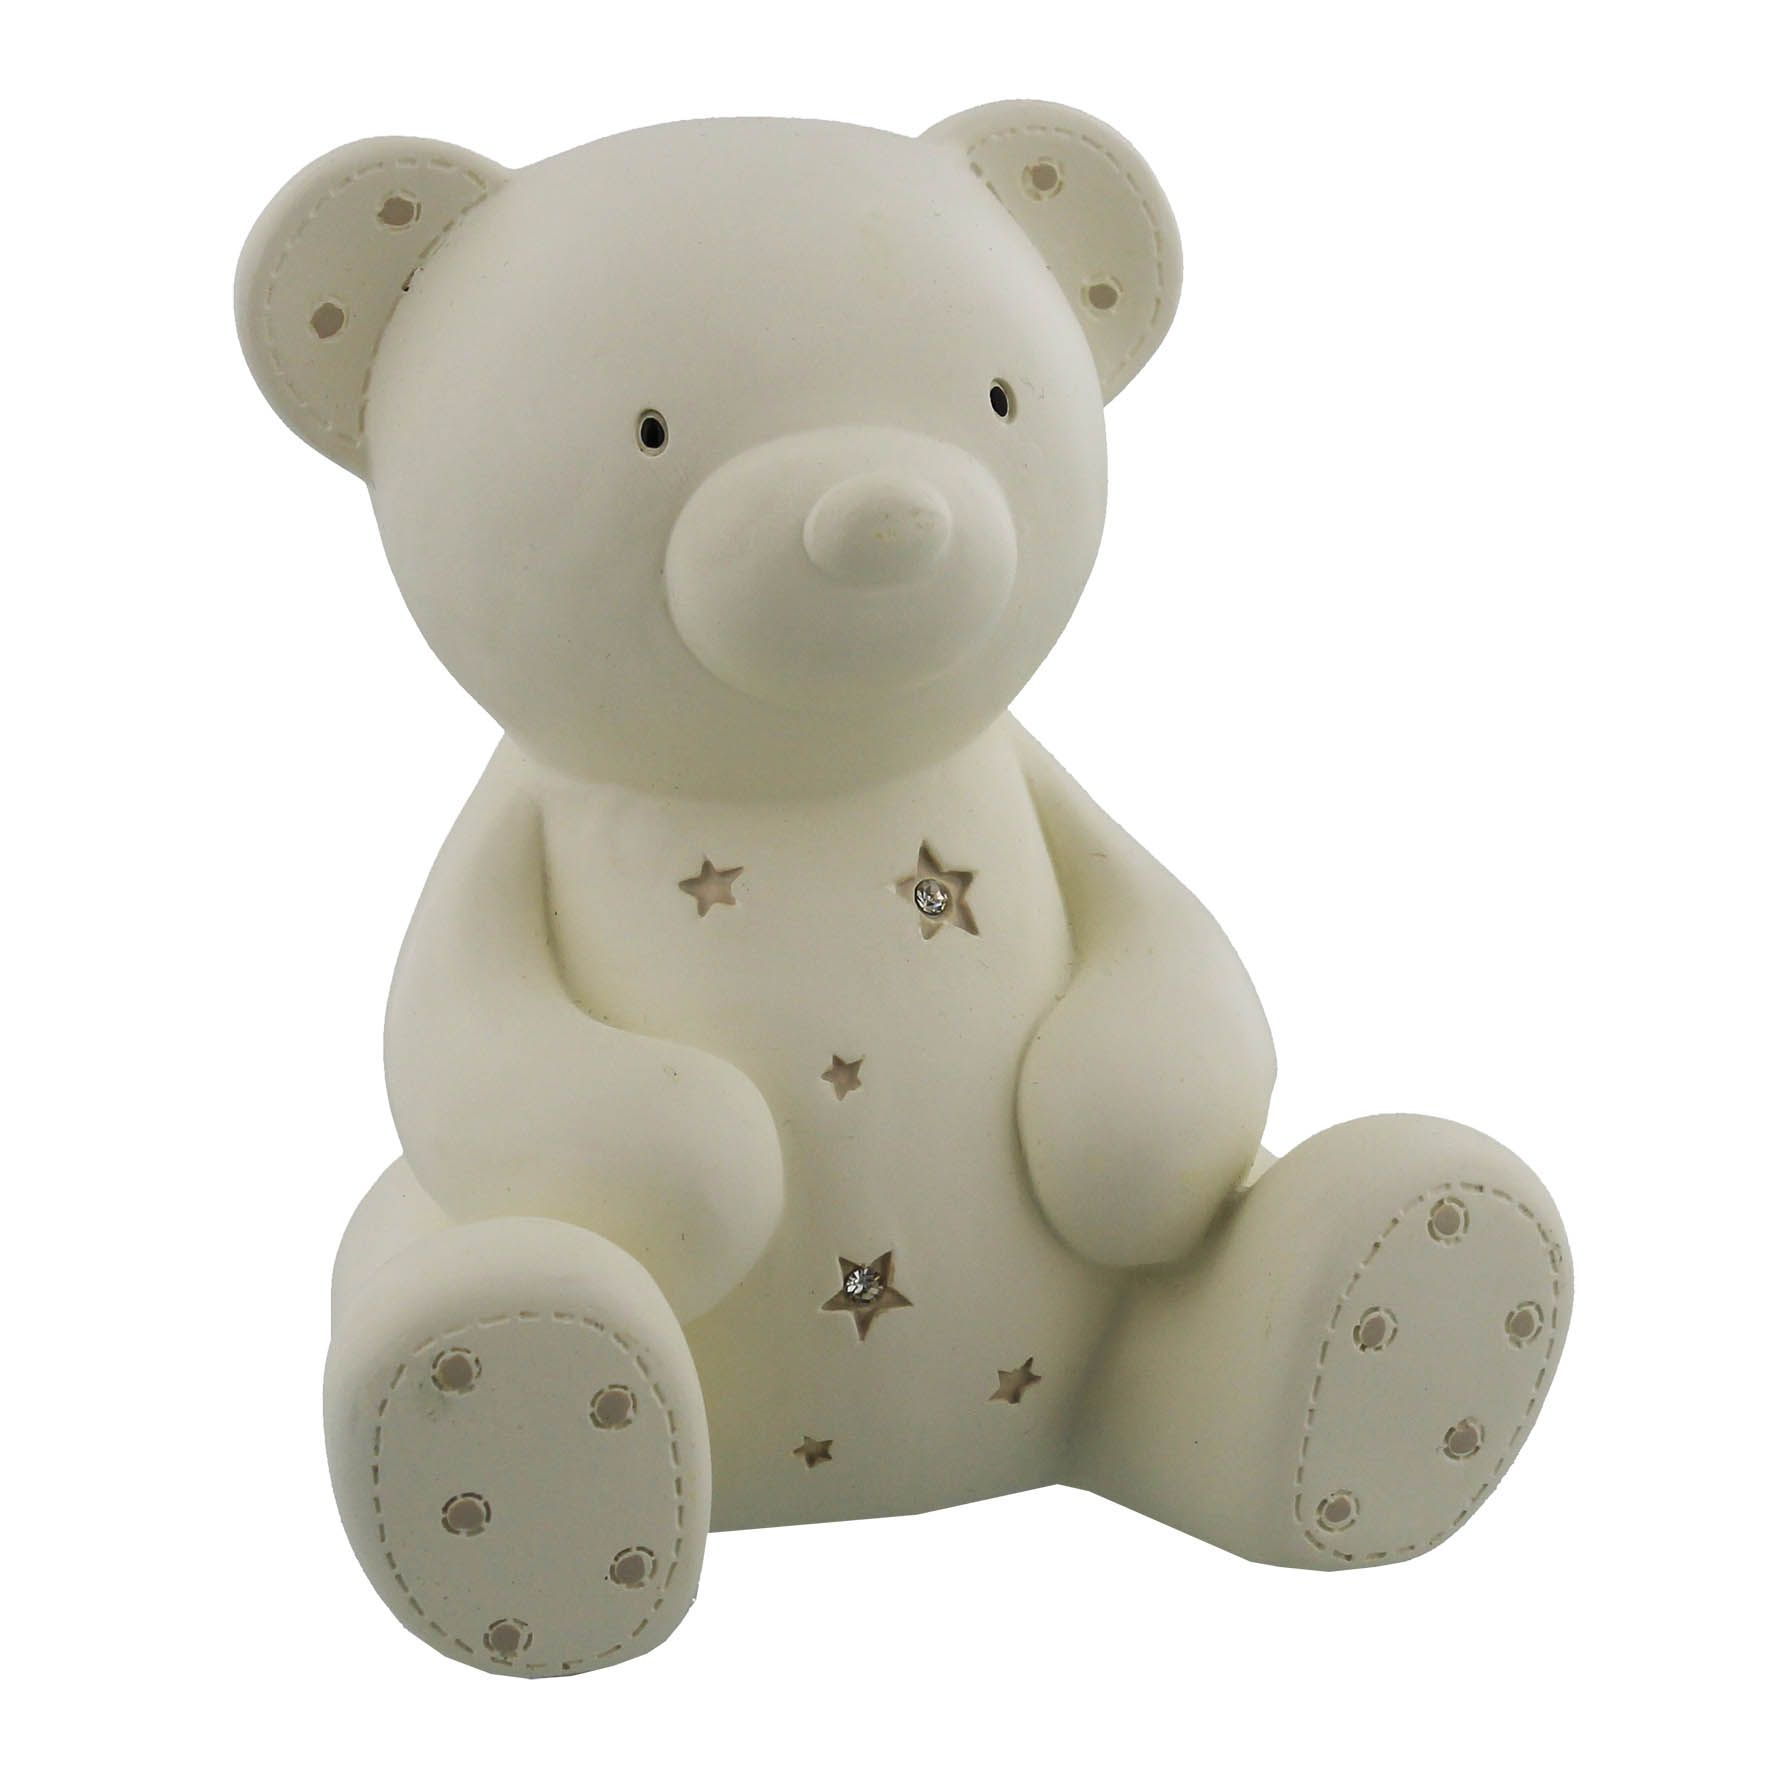 Bambino Bambino Resin money bank - teddy